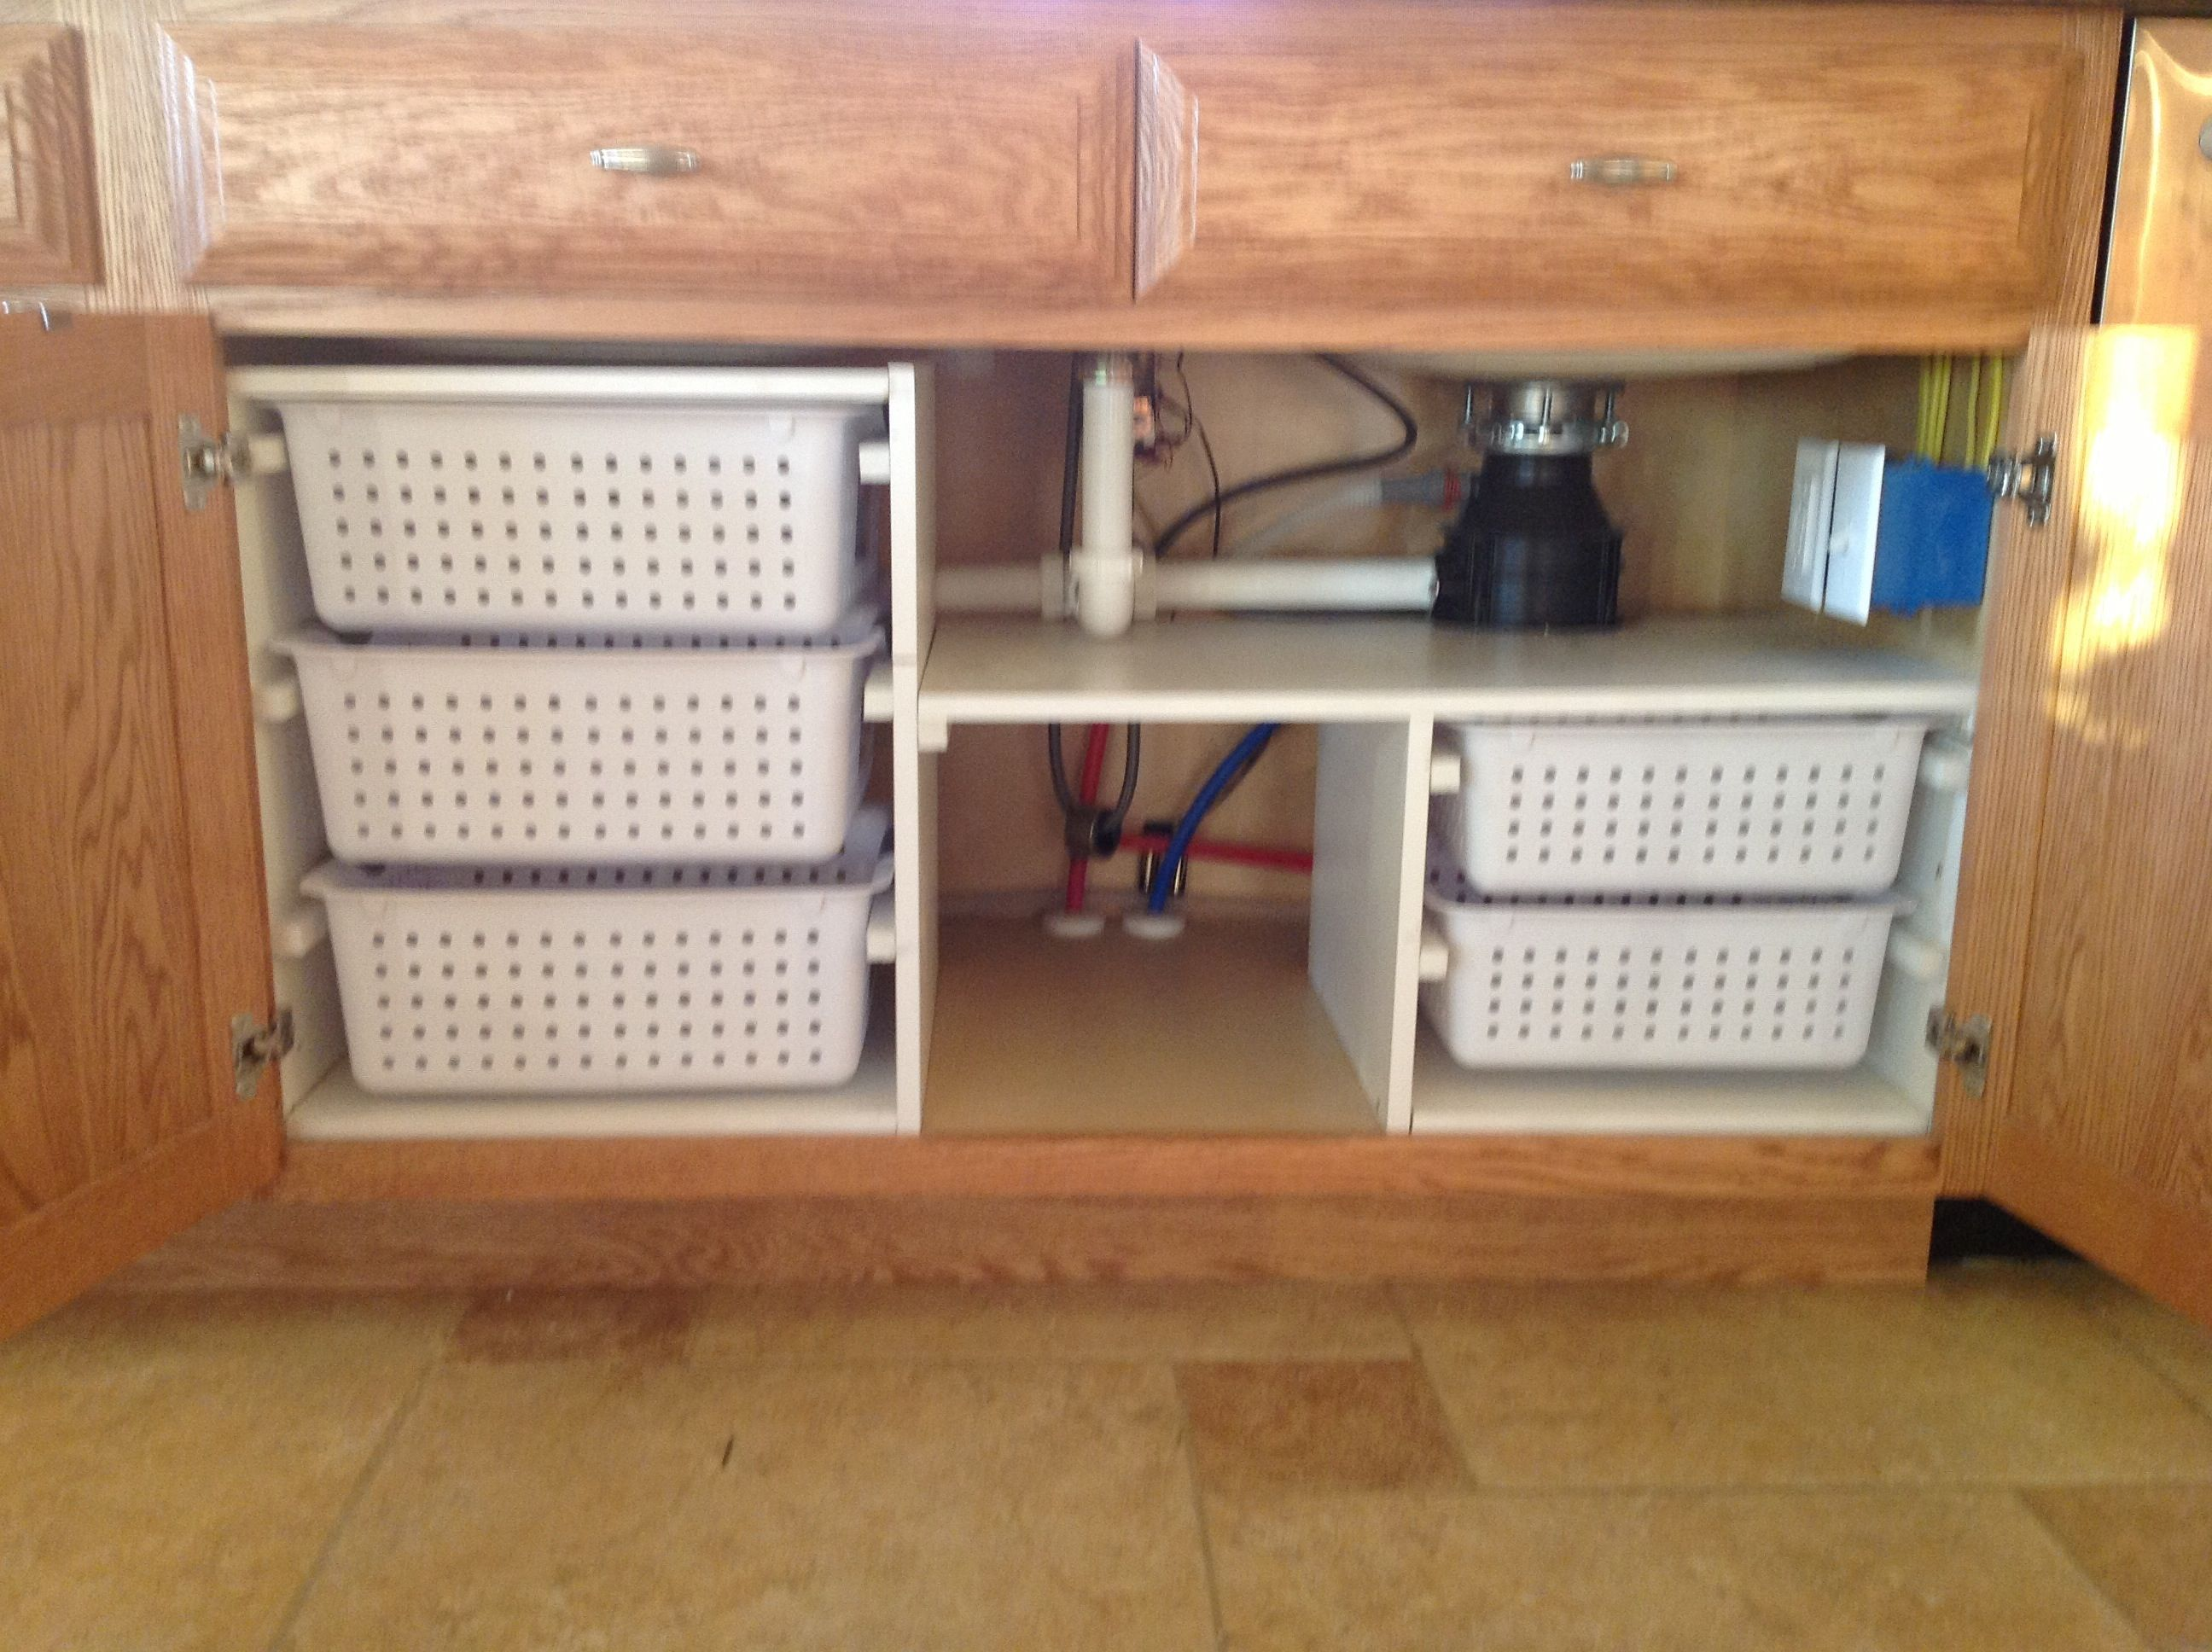 Ordinary Kitchen Sink Storage #13: Steve Built This For Organization U0026amp; Storage Under Our Kitchen Sink. He Did A Wonderful Job!